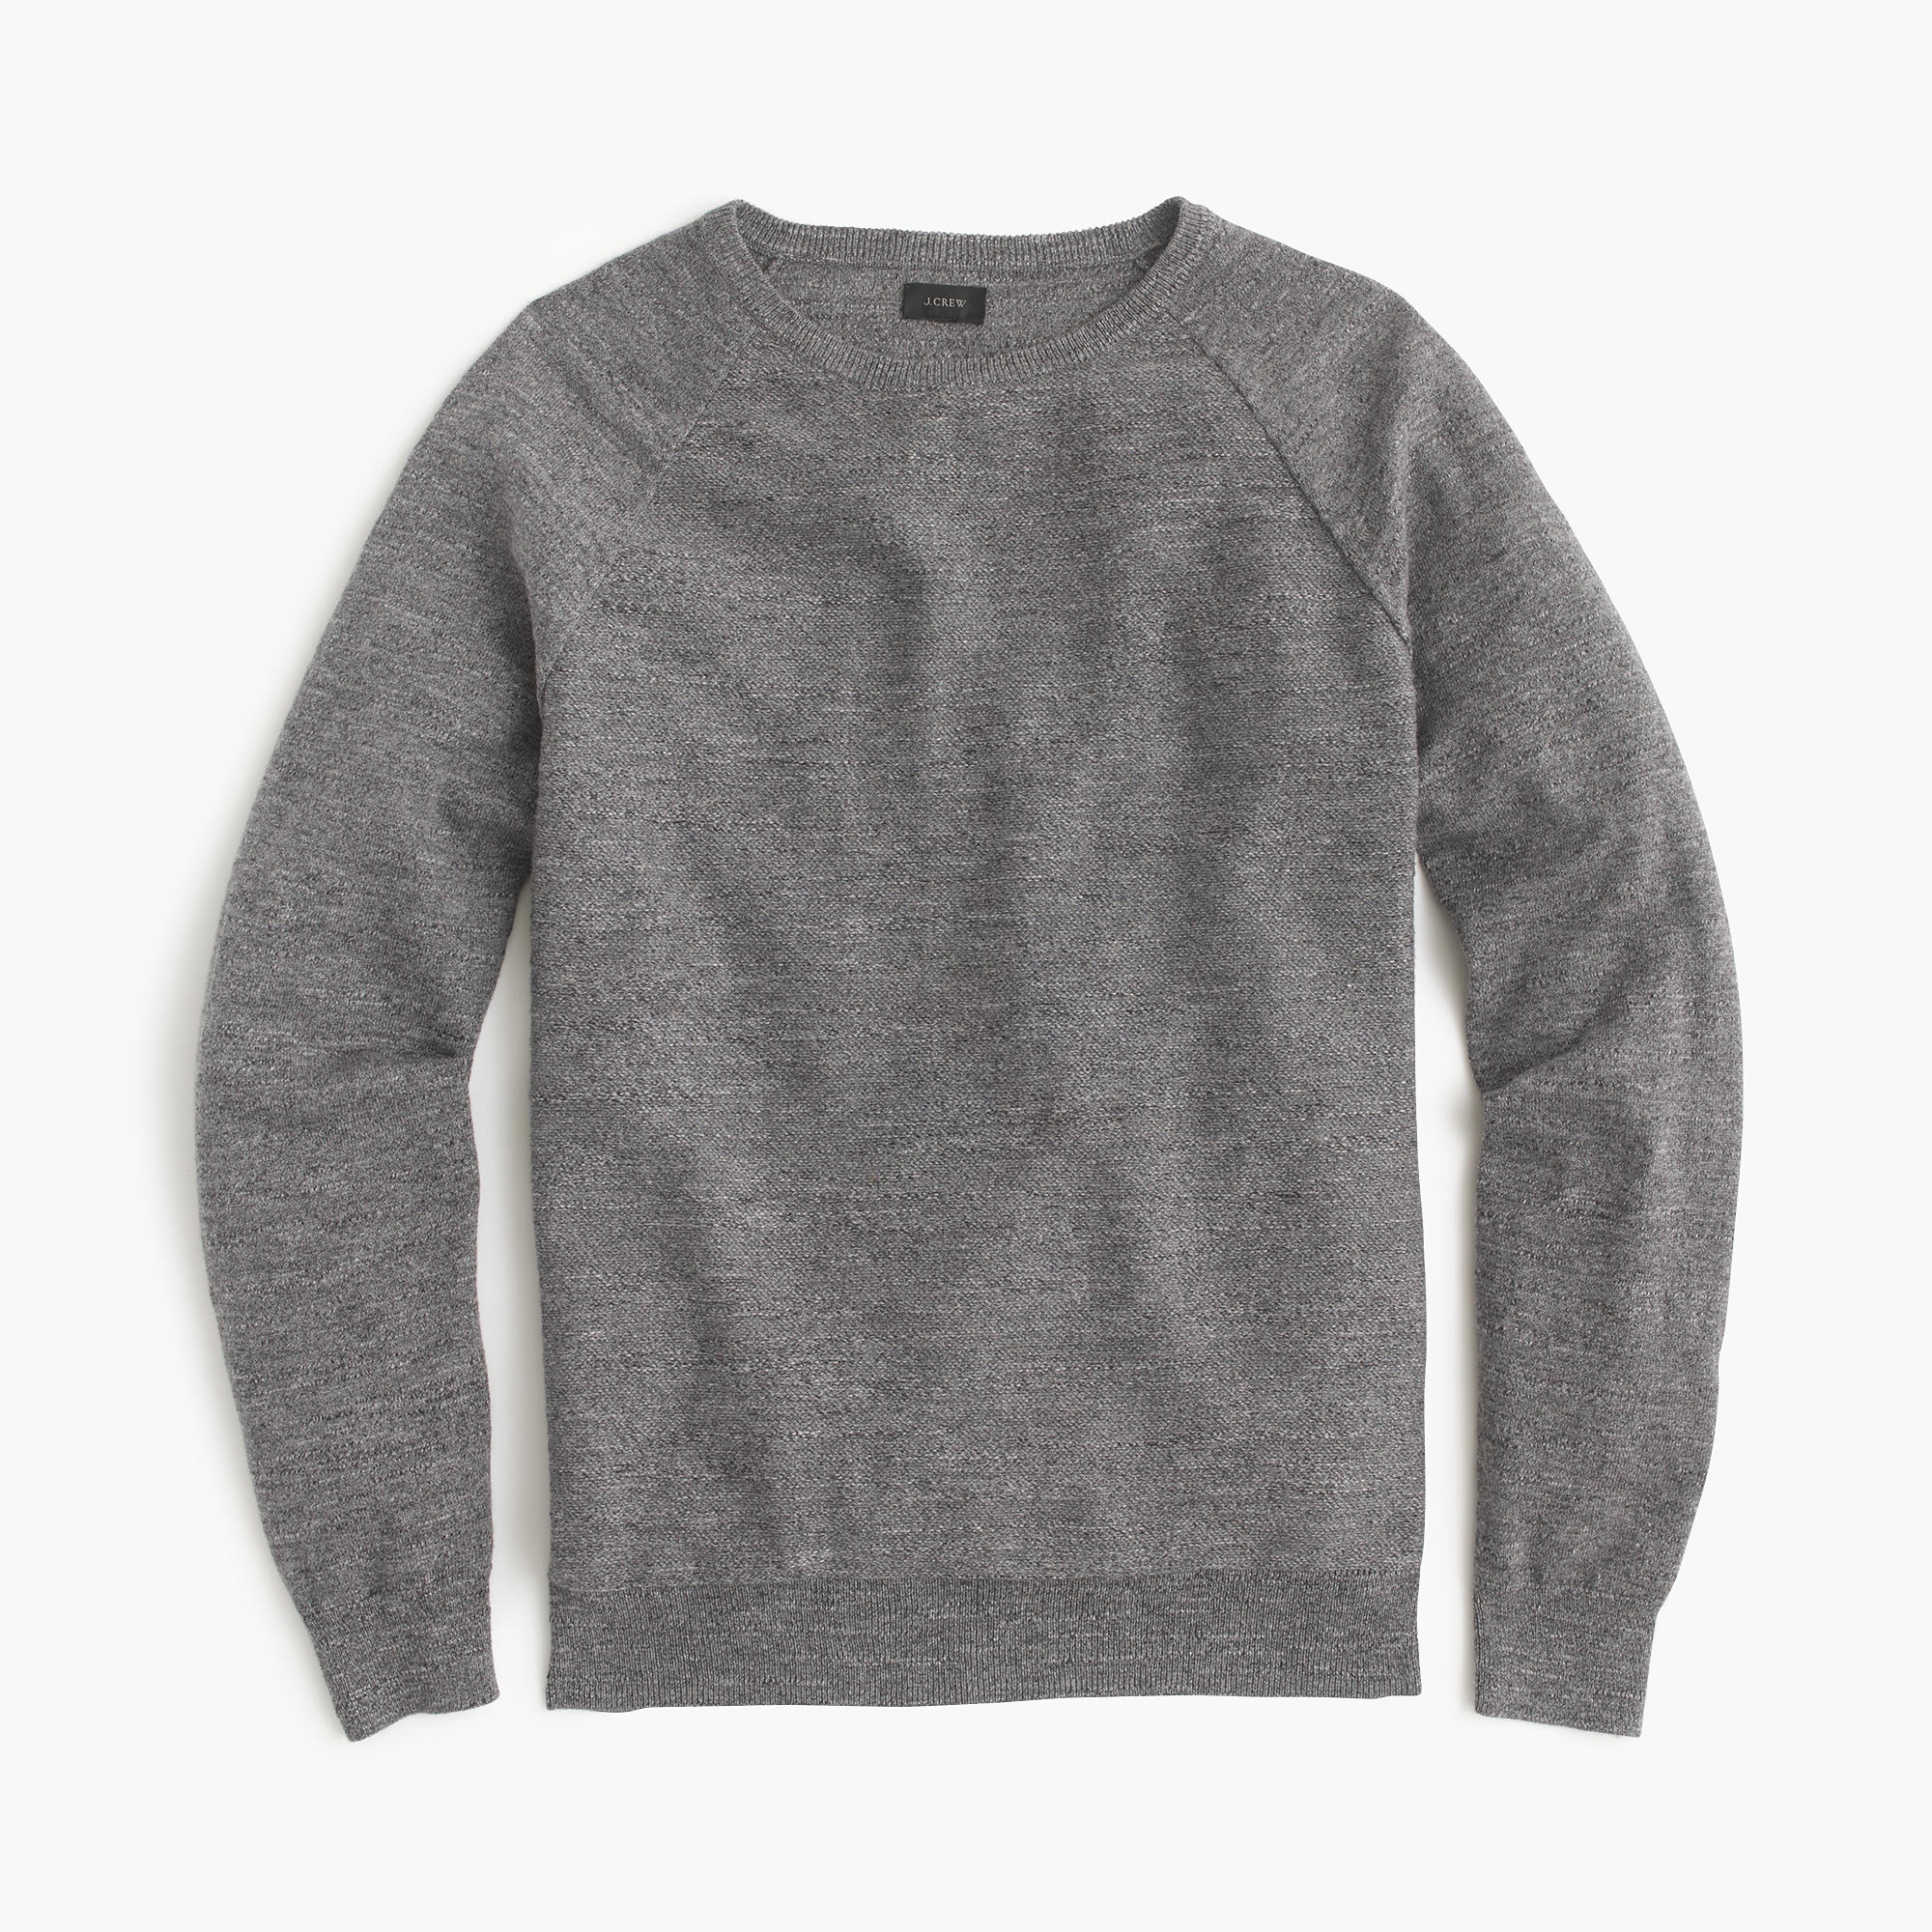 Rugged Cotton Sweater : Men's Sweaters